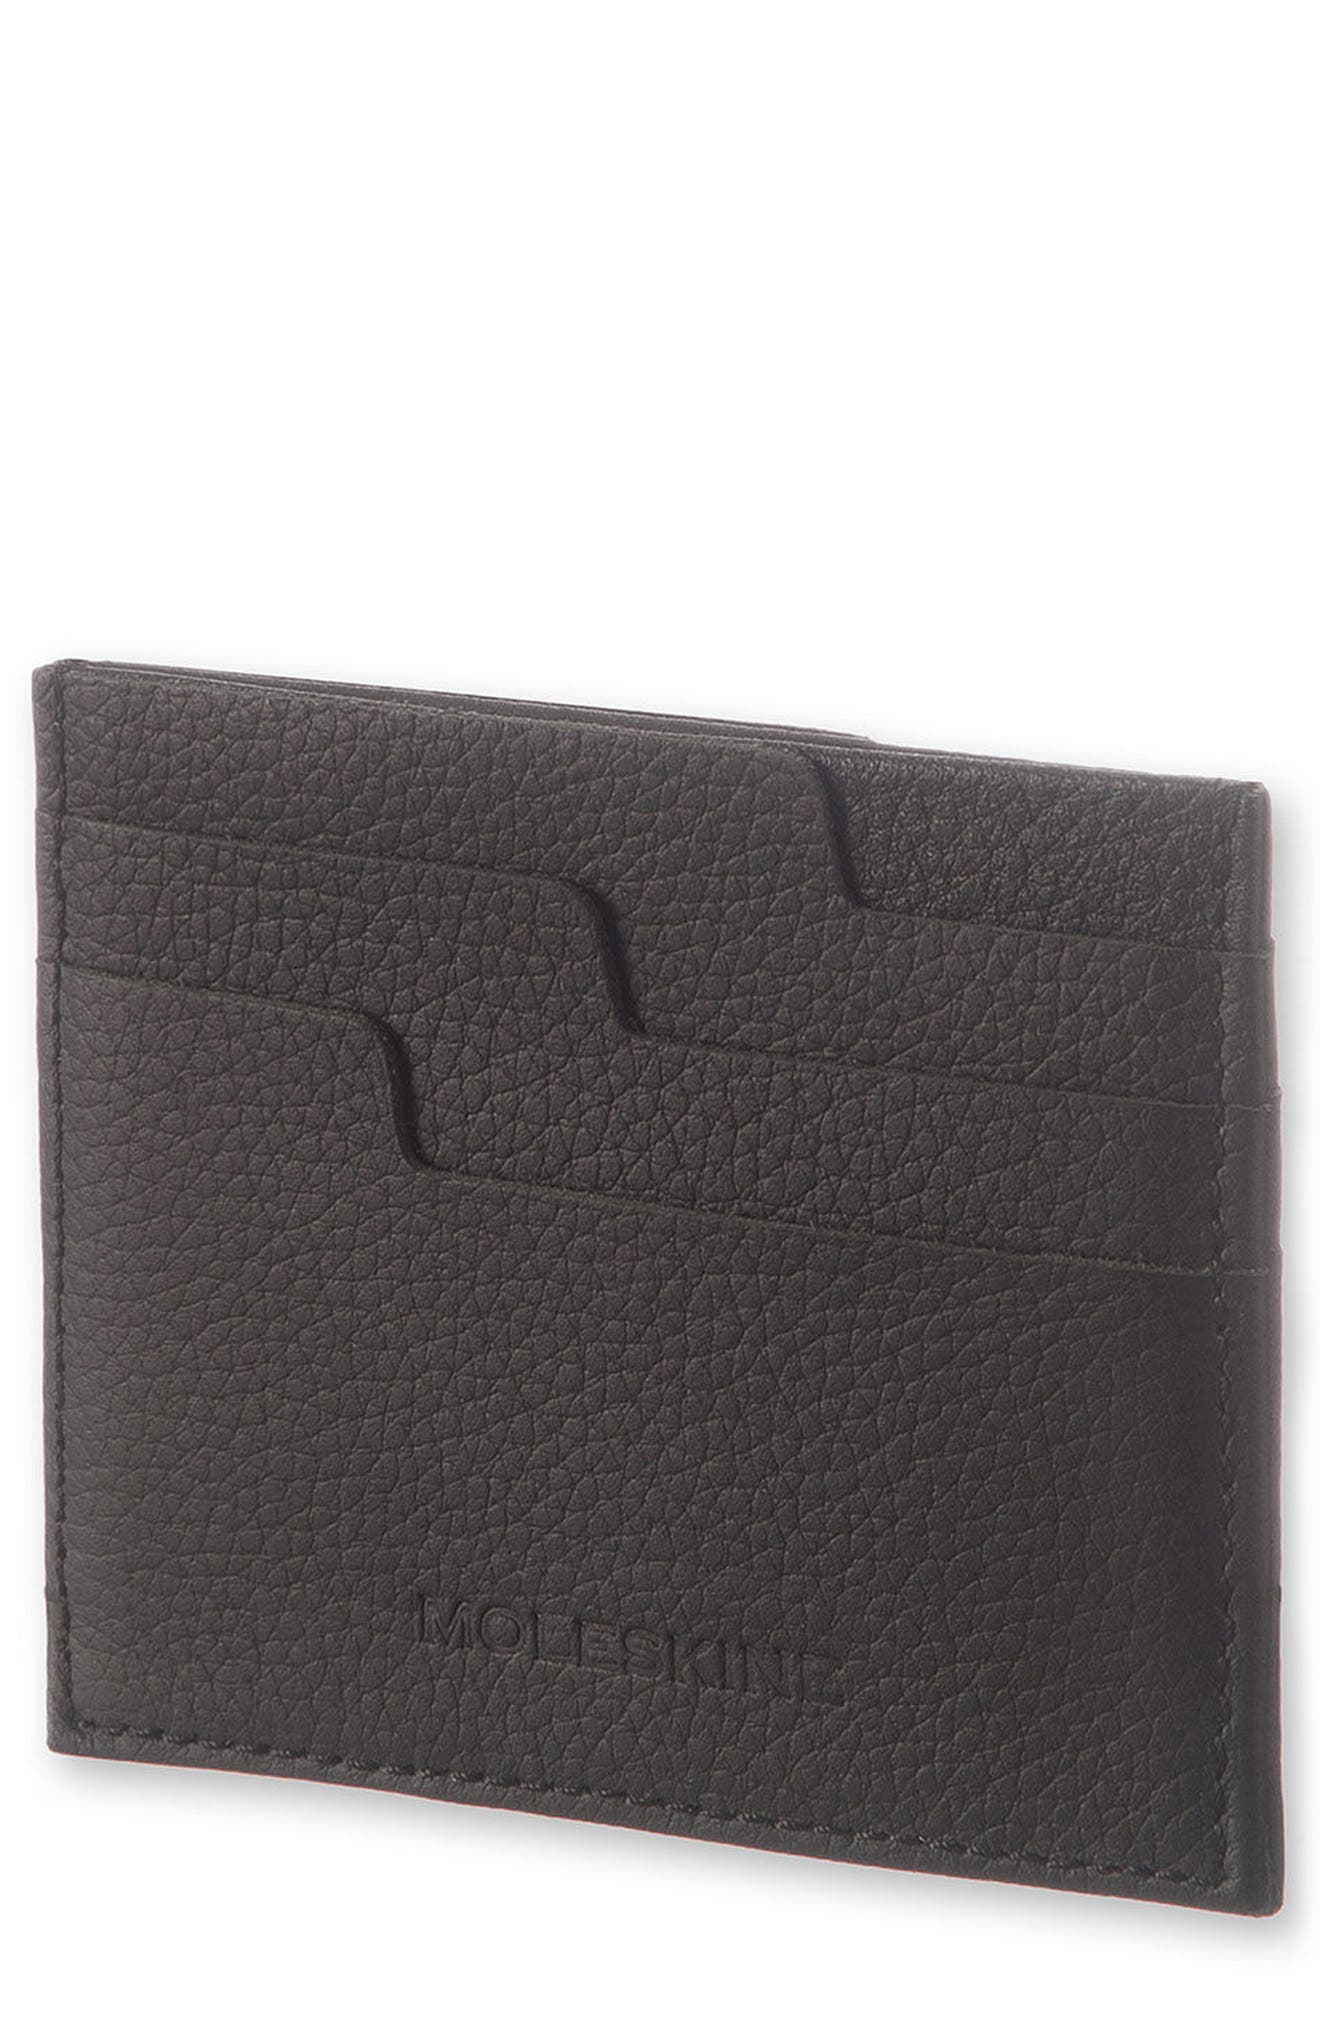 Moleskin Lineage Leather Card Case,                             Main thumbnail 1, color,                             001